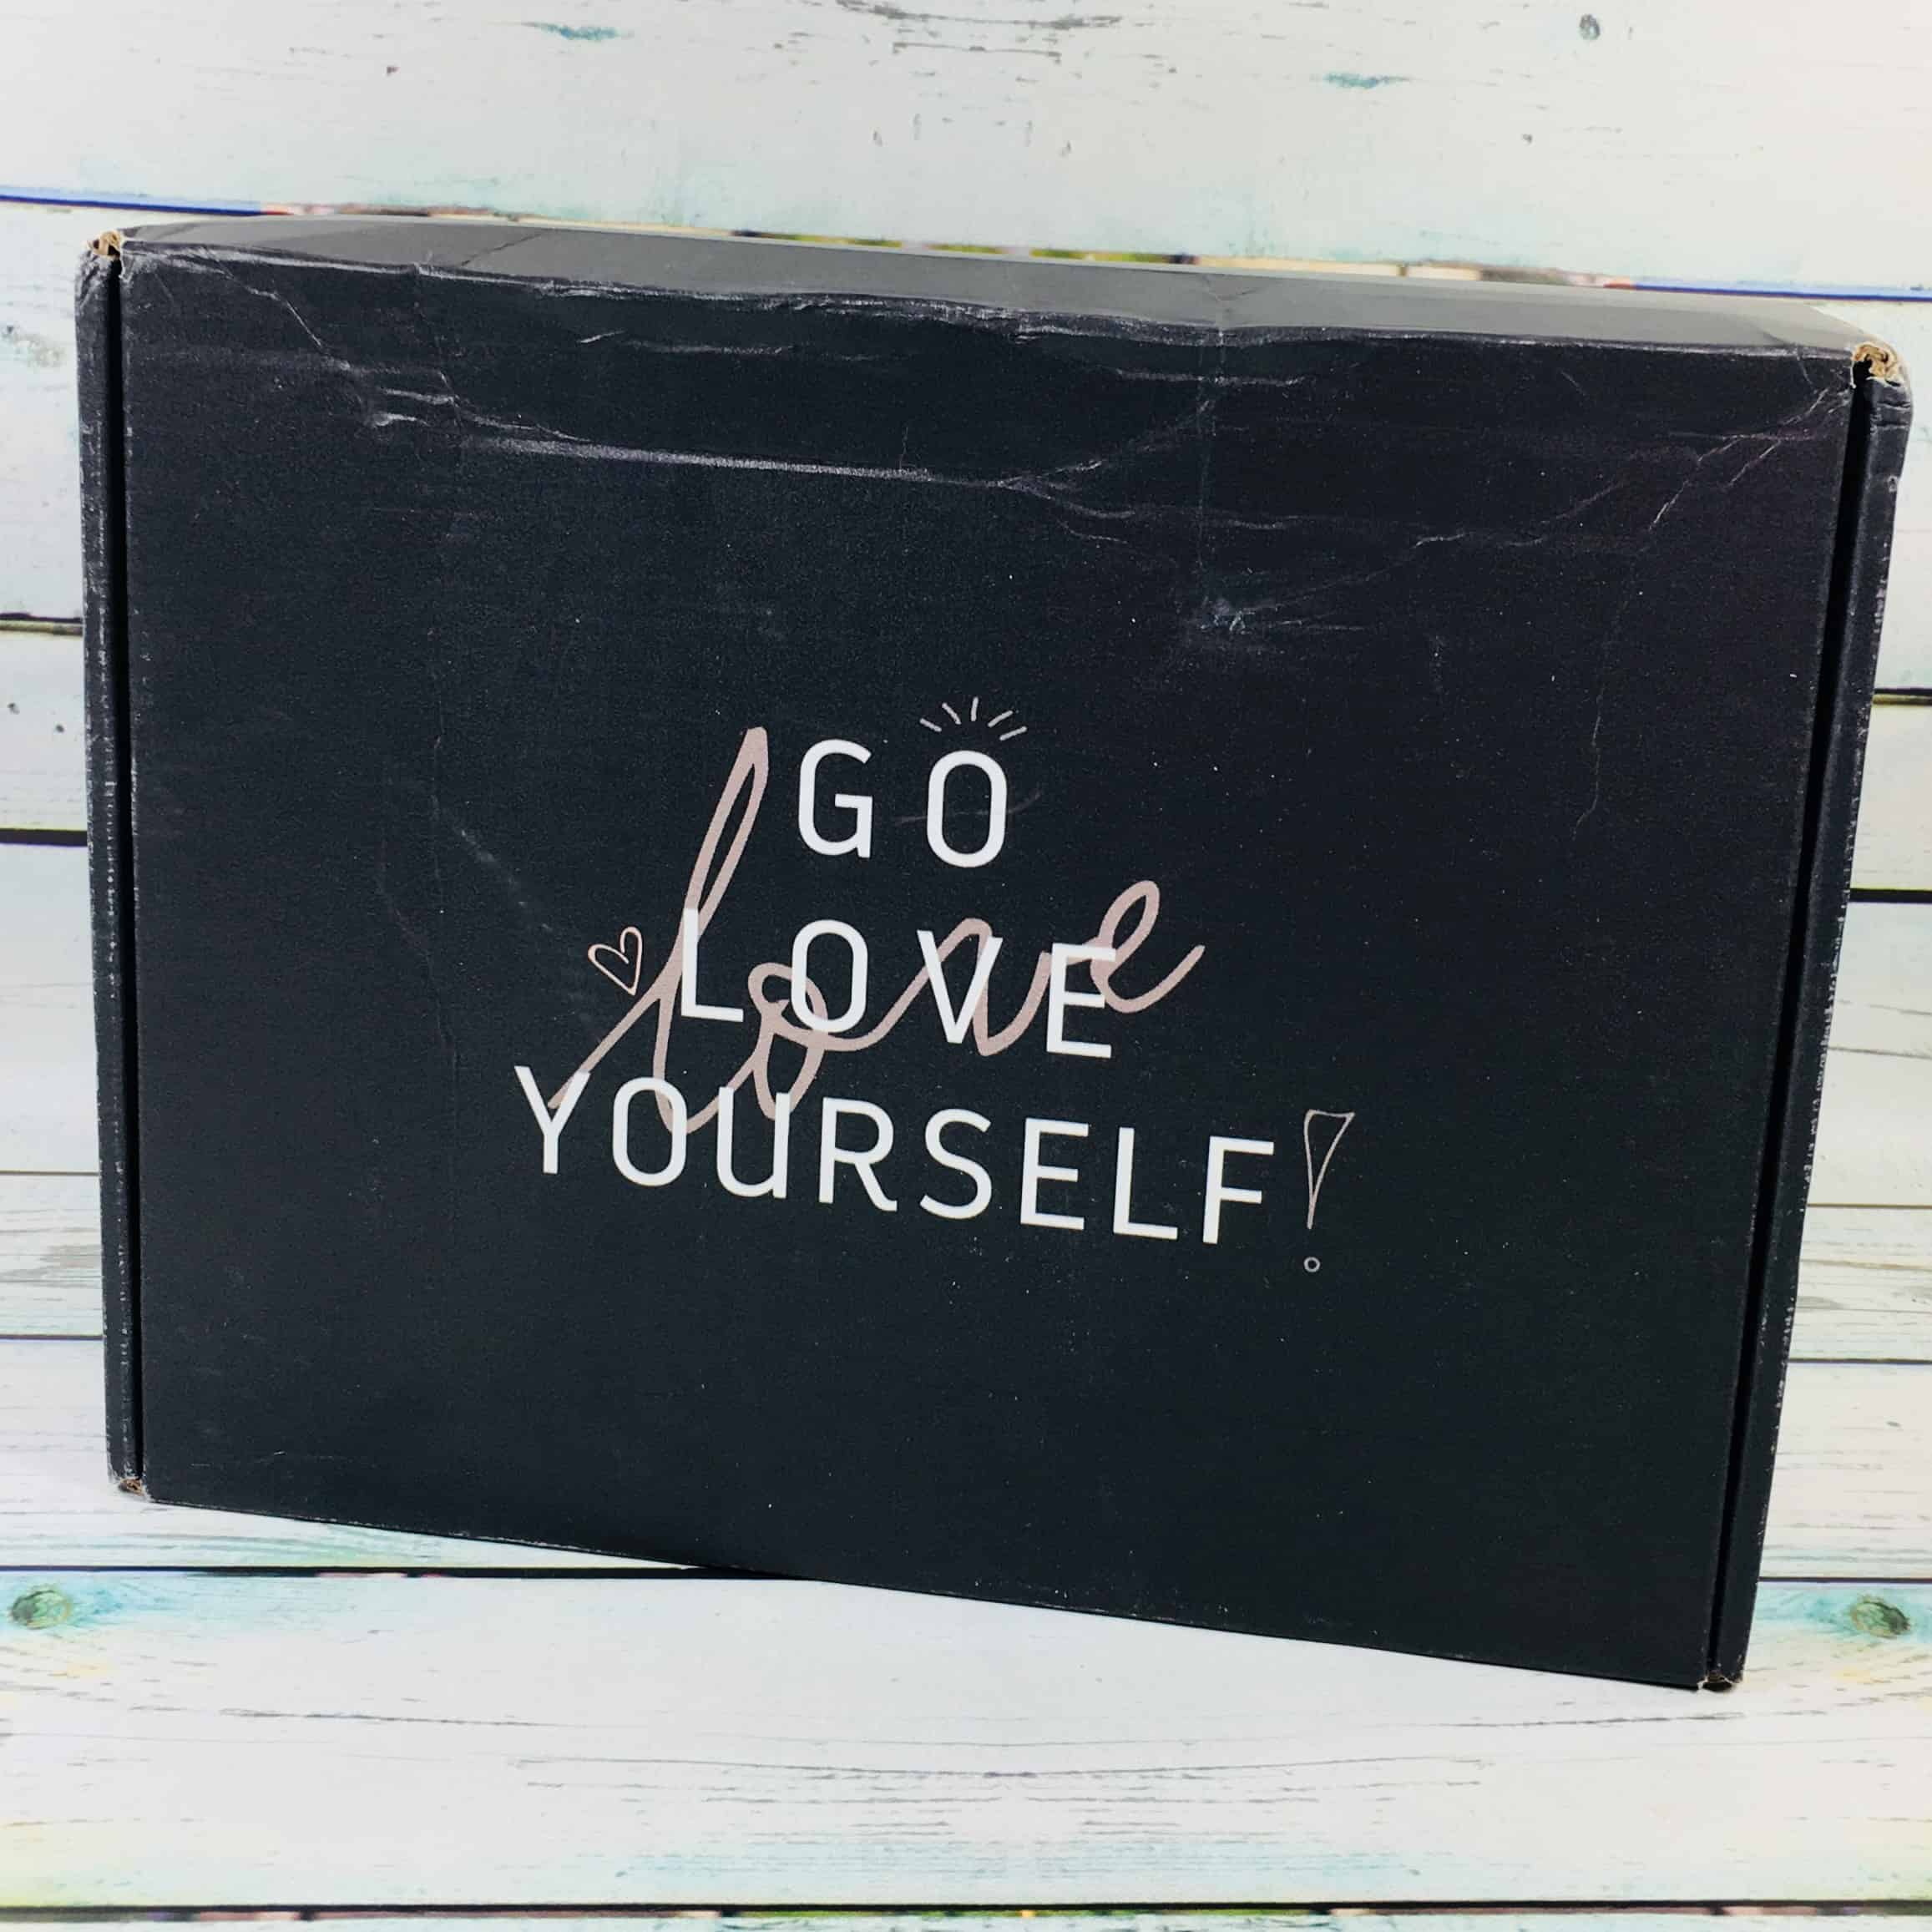 Go love yourself june 2018 subscription box review coupon hello go love yourself is a monthly subscription box to help you live a happier and more fulfilled life receive a care package each month just for you solutioingenieria Image collections